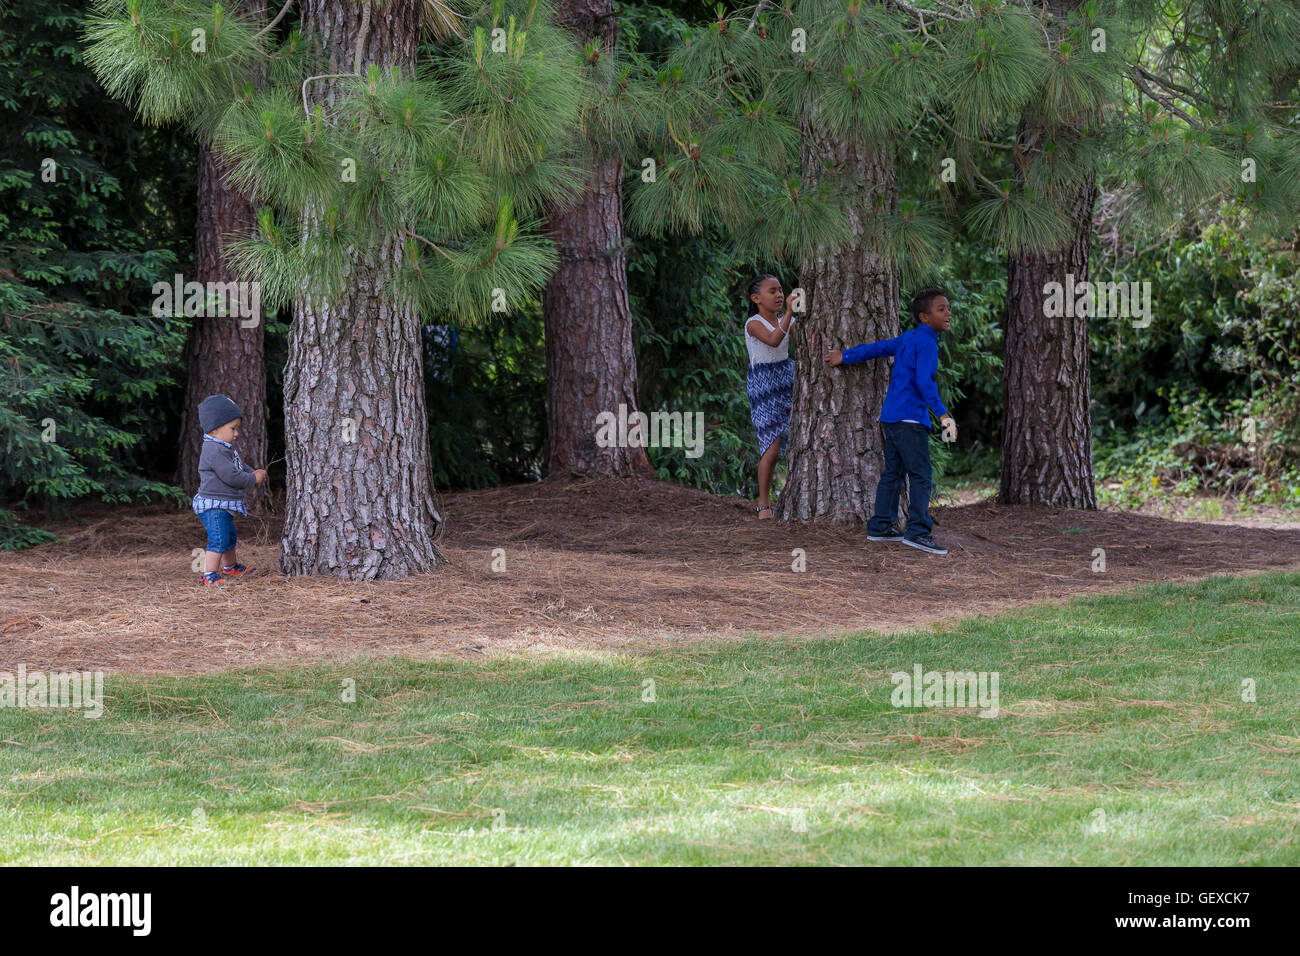 boys and girl, playing, playing, hide-and-seek, Sonoma State University, city, Rohnert Park, Sonoma County, California - Stock Image